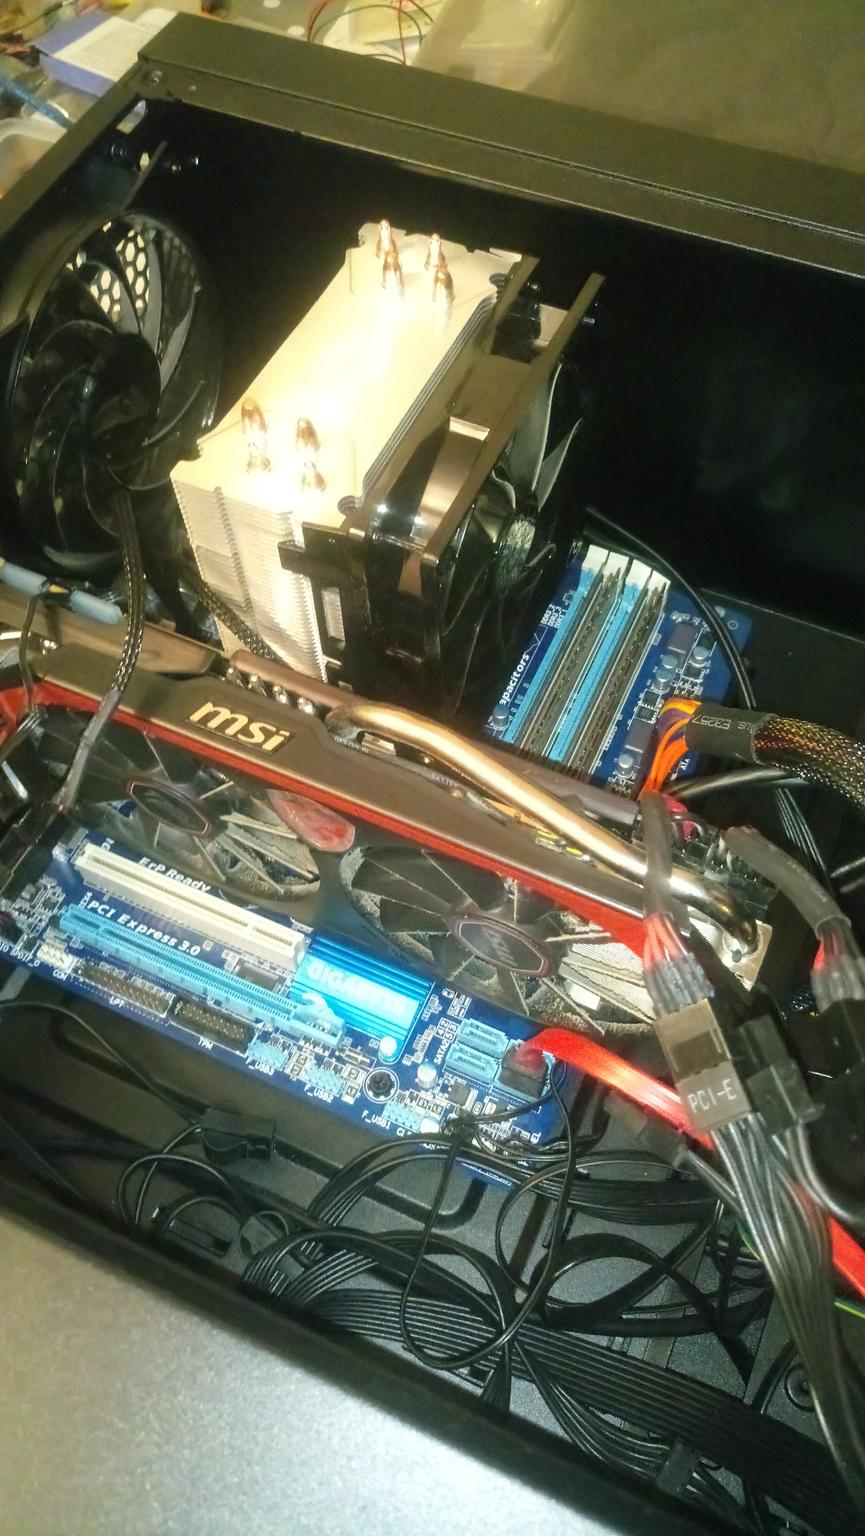 Well Specced core i7 Gaming PC full setup